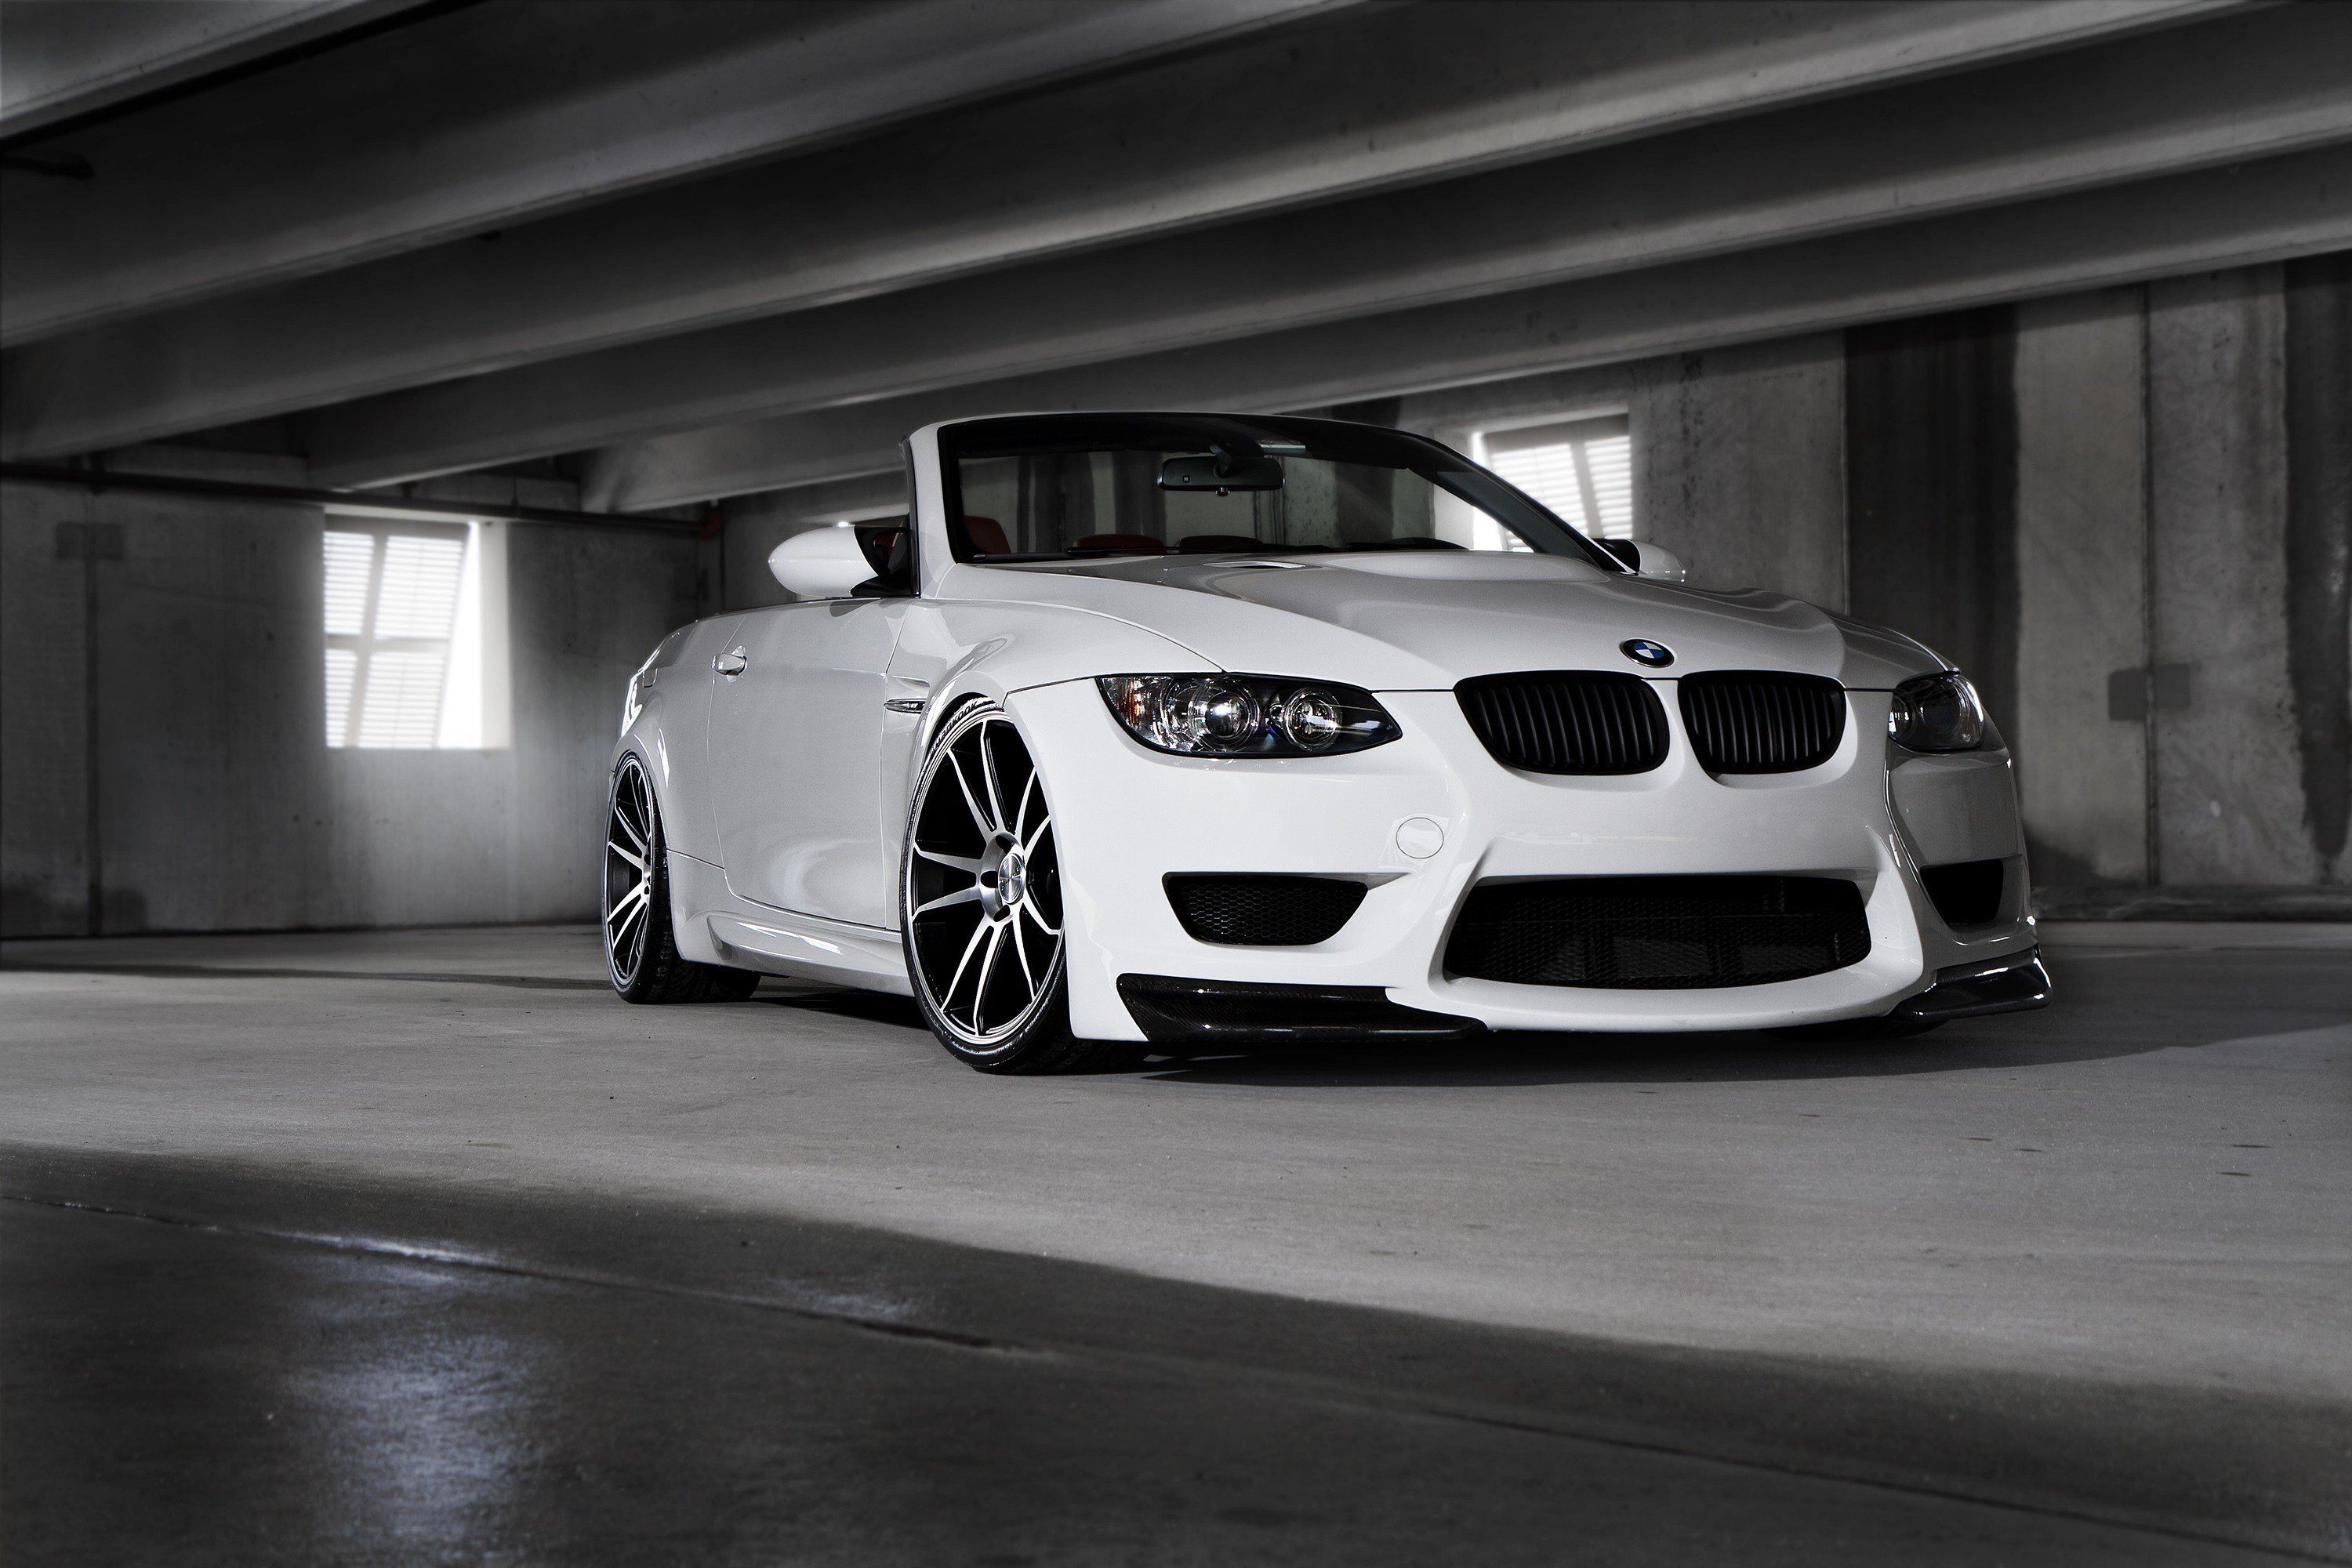 Latest Wallpaper Bmw M3 White Front Automobile 3000X2000 Free Download